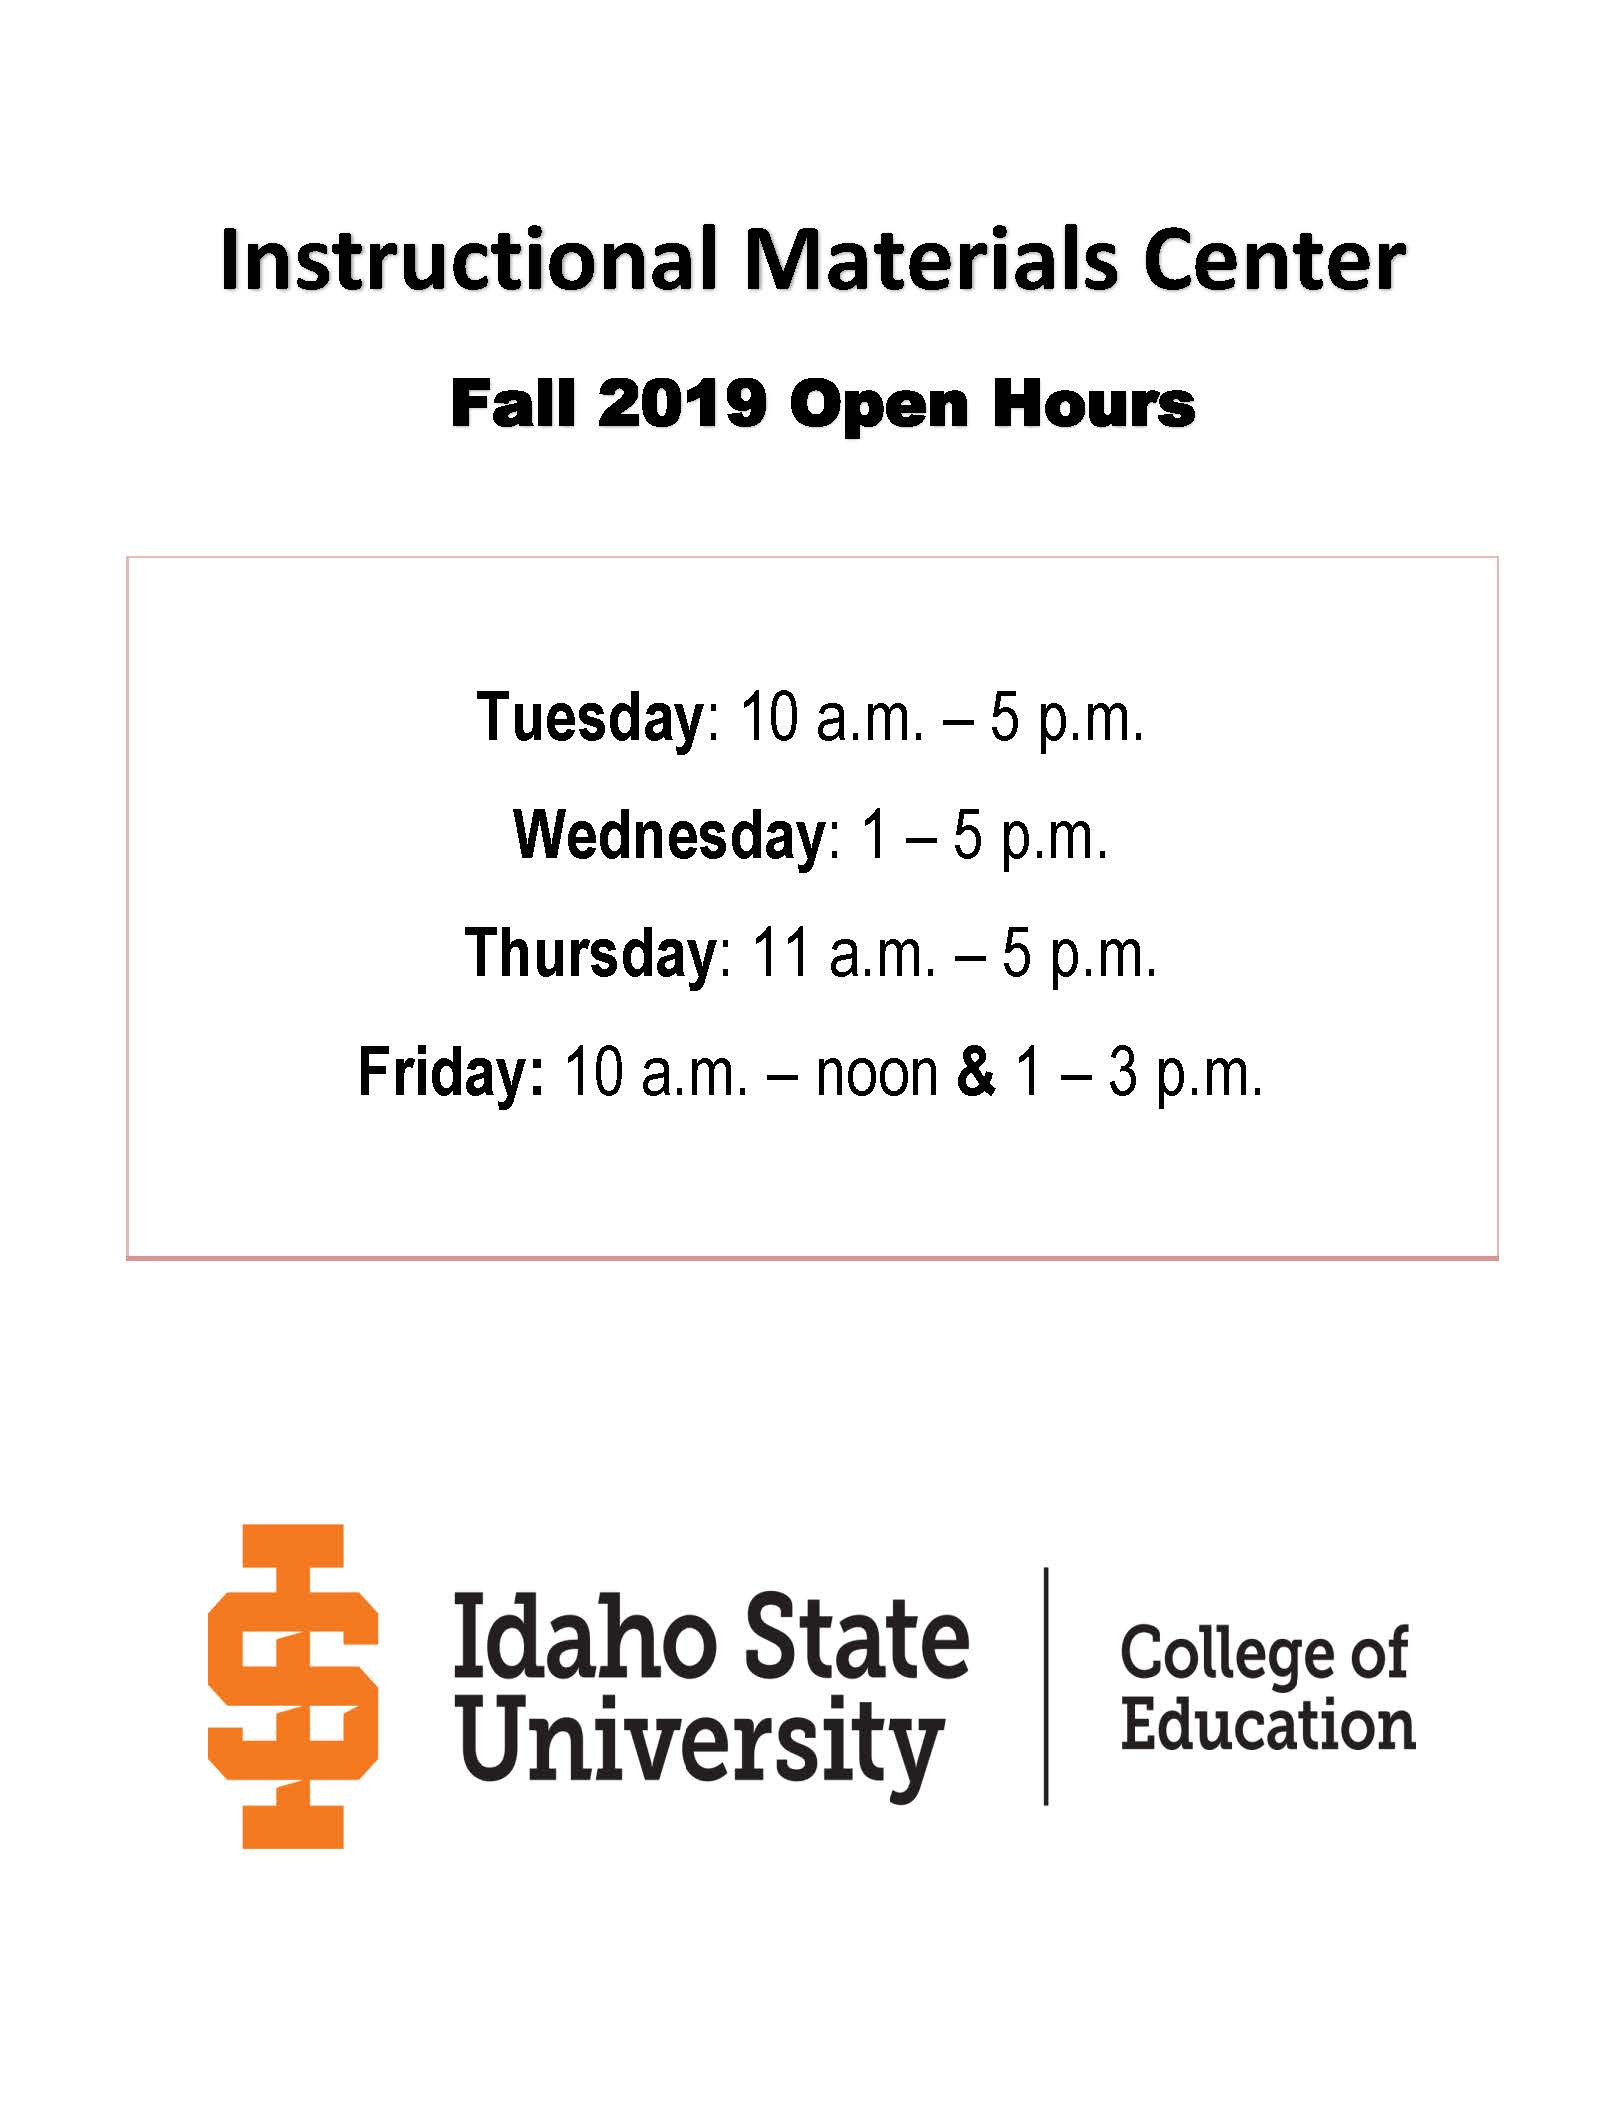 Instructional Materials Center hours for Fall 2019